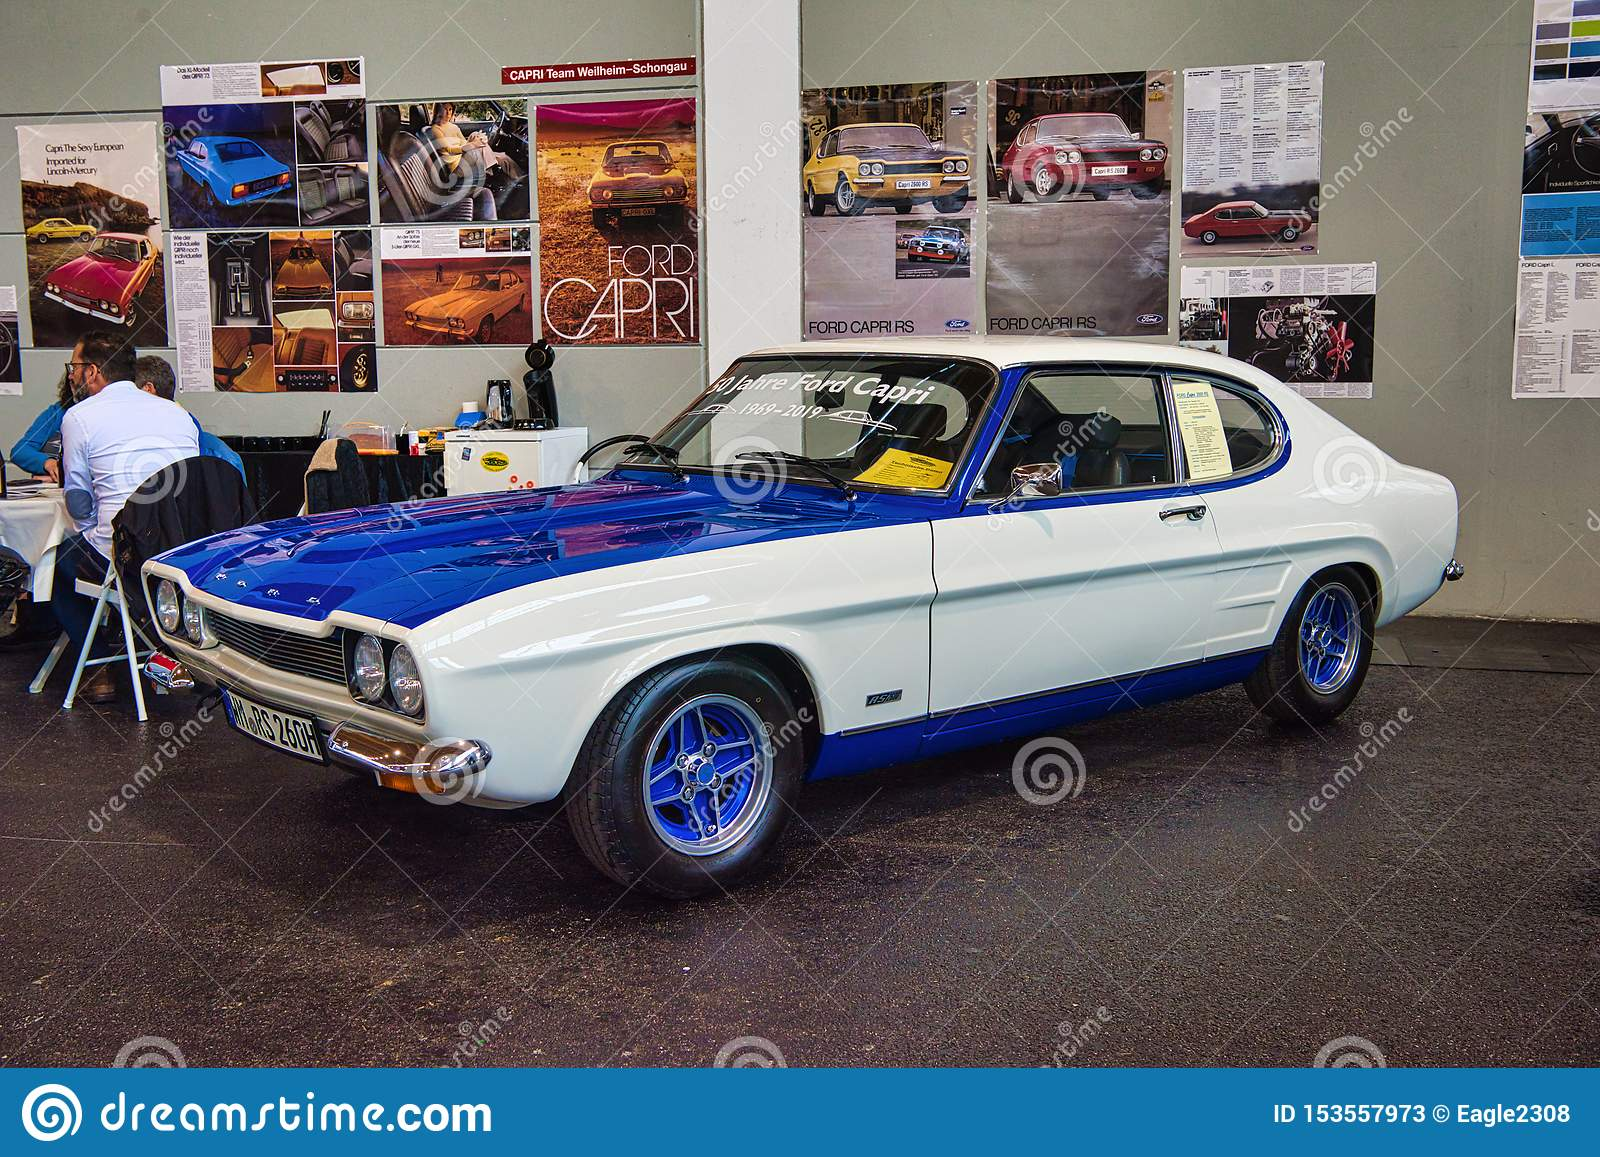 Friedrichshafen May 2019 White Blue Ford Capri 2600 Rs 1970 At Motorworld Classics Bodensee On May 11 2019 In Friedrichshafen Editorial Stock Photo Image Of 1970 Circuit 153557973